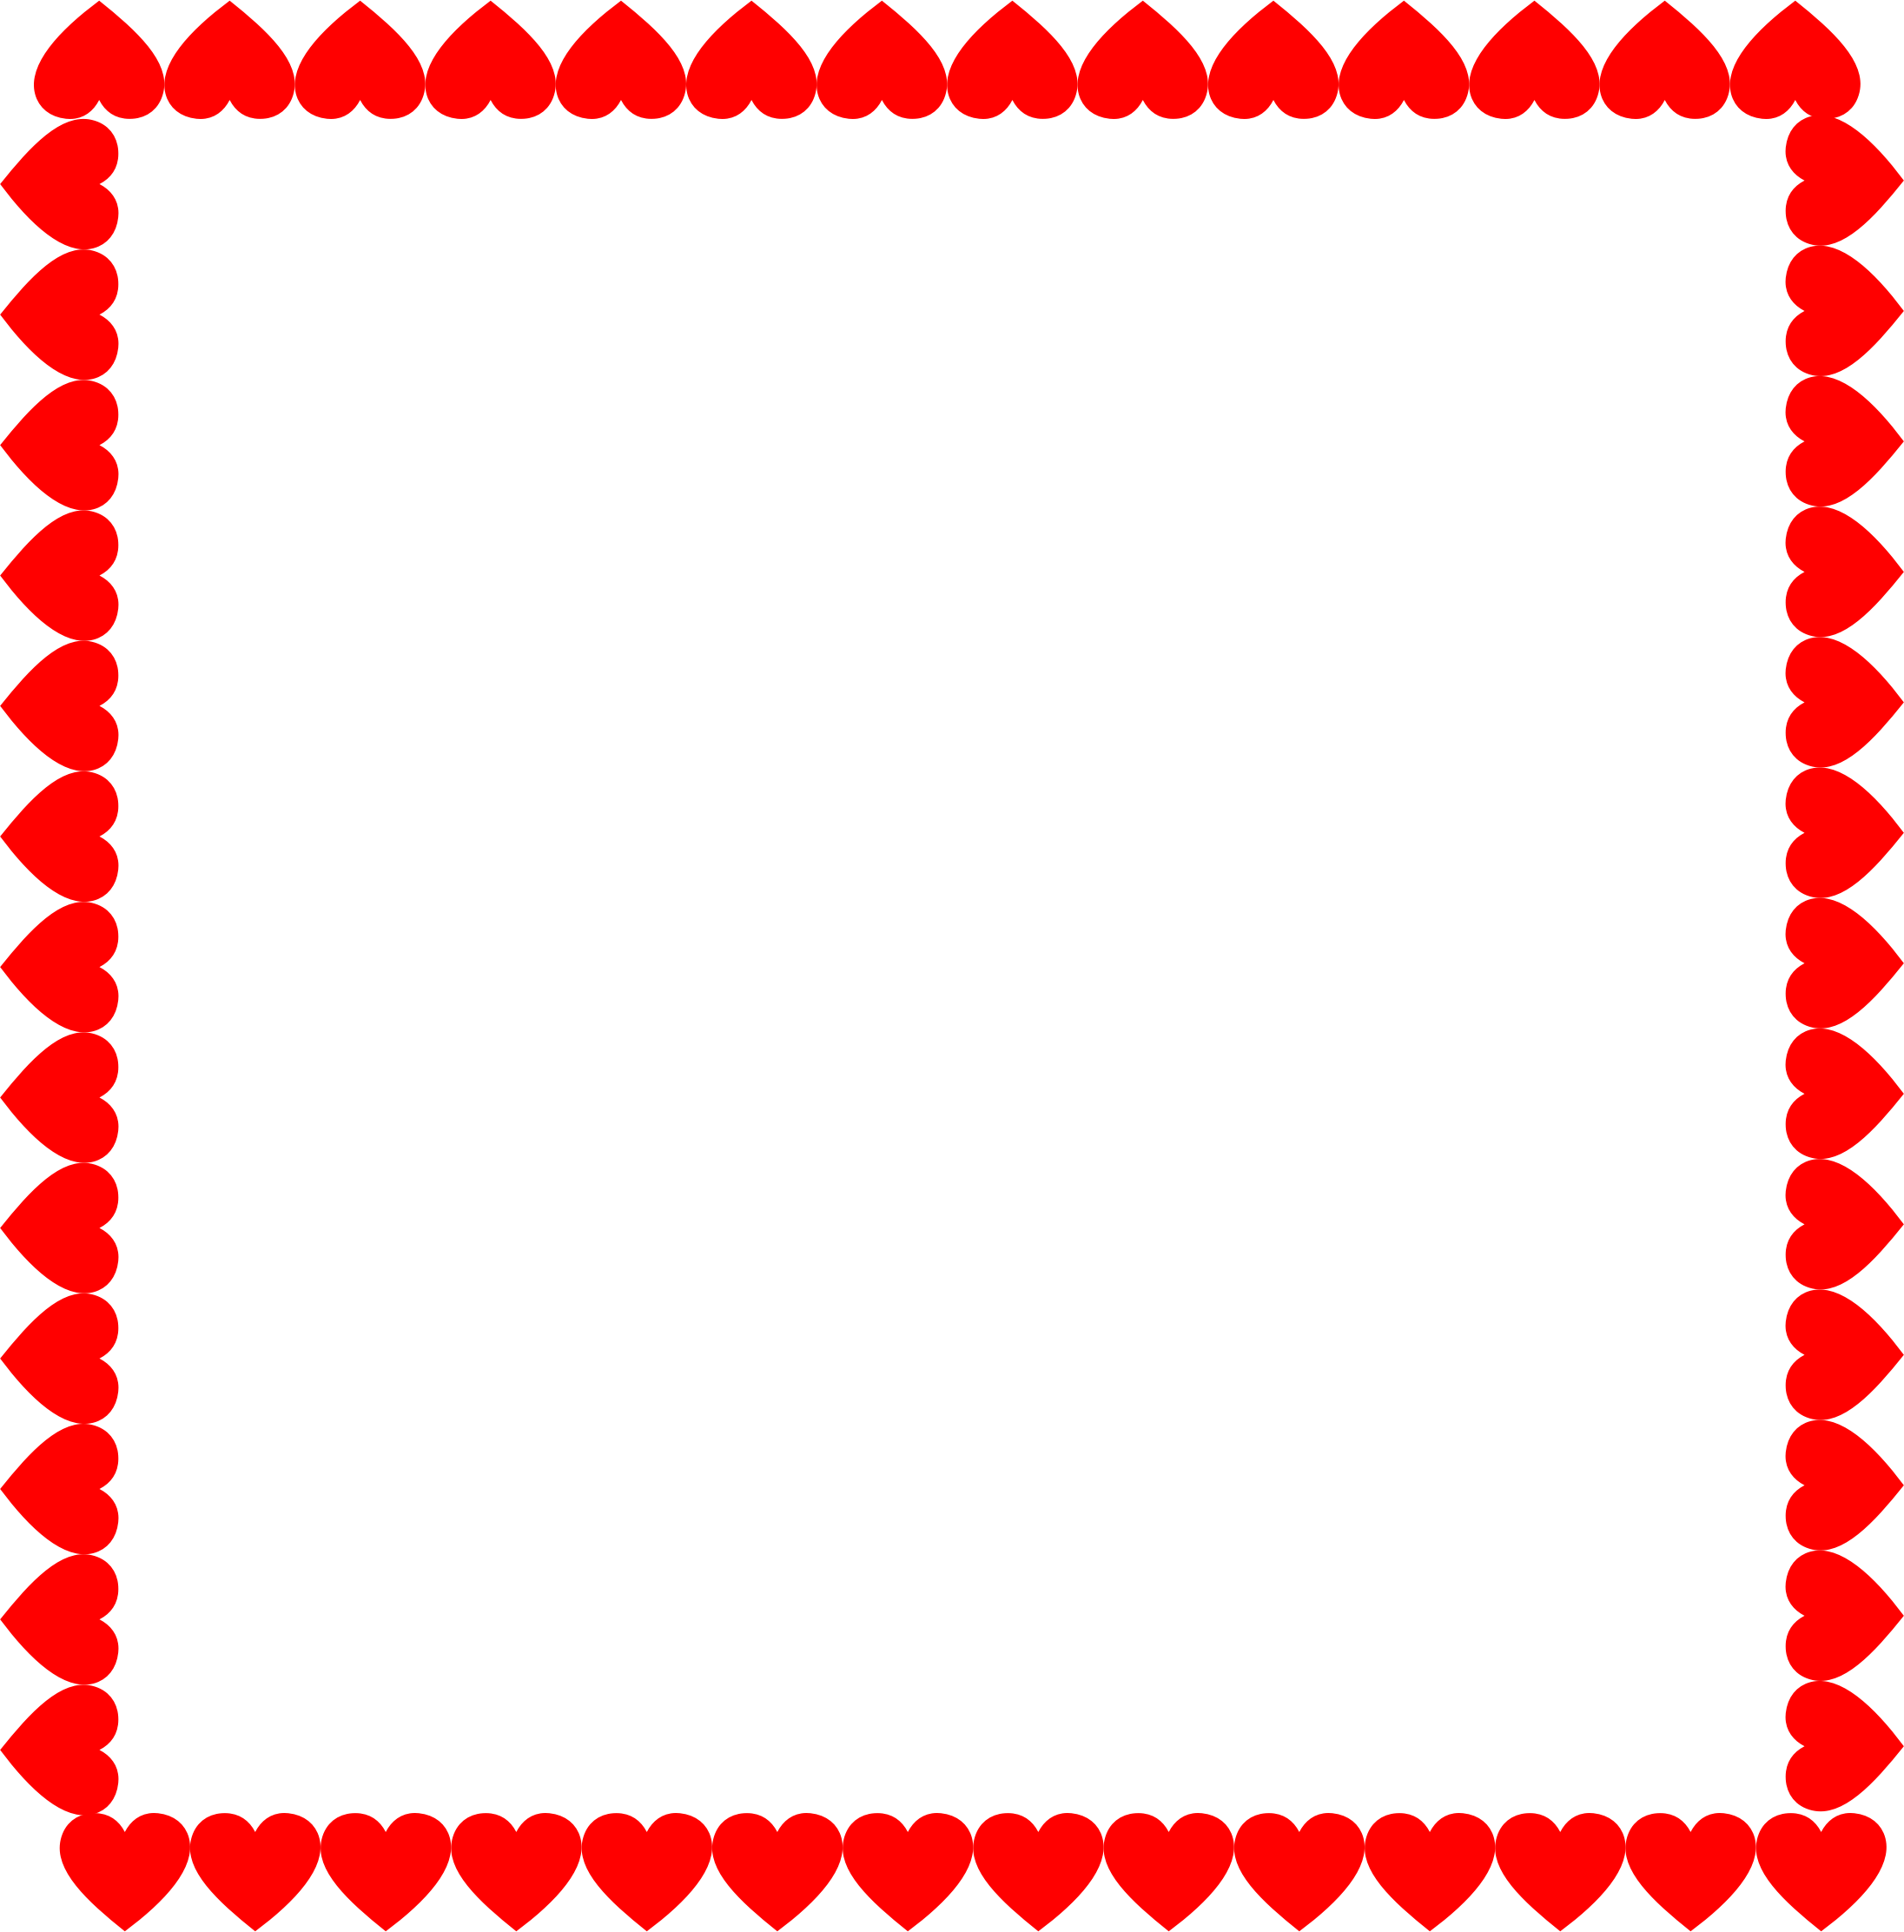 clipart hearts frame